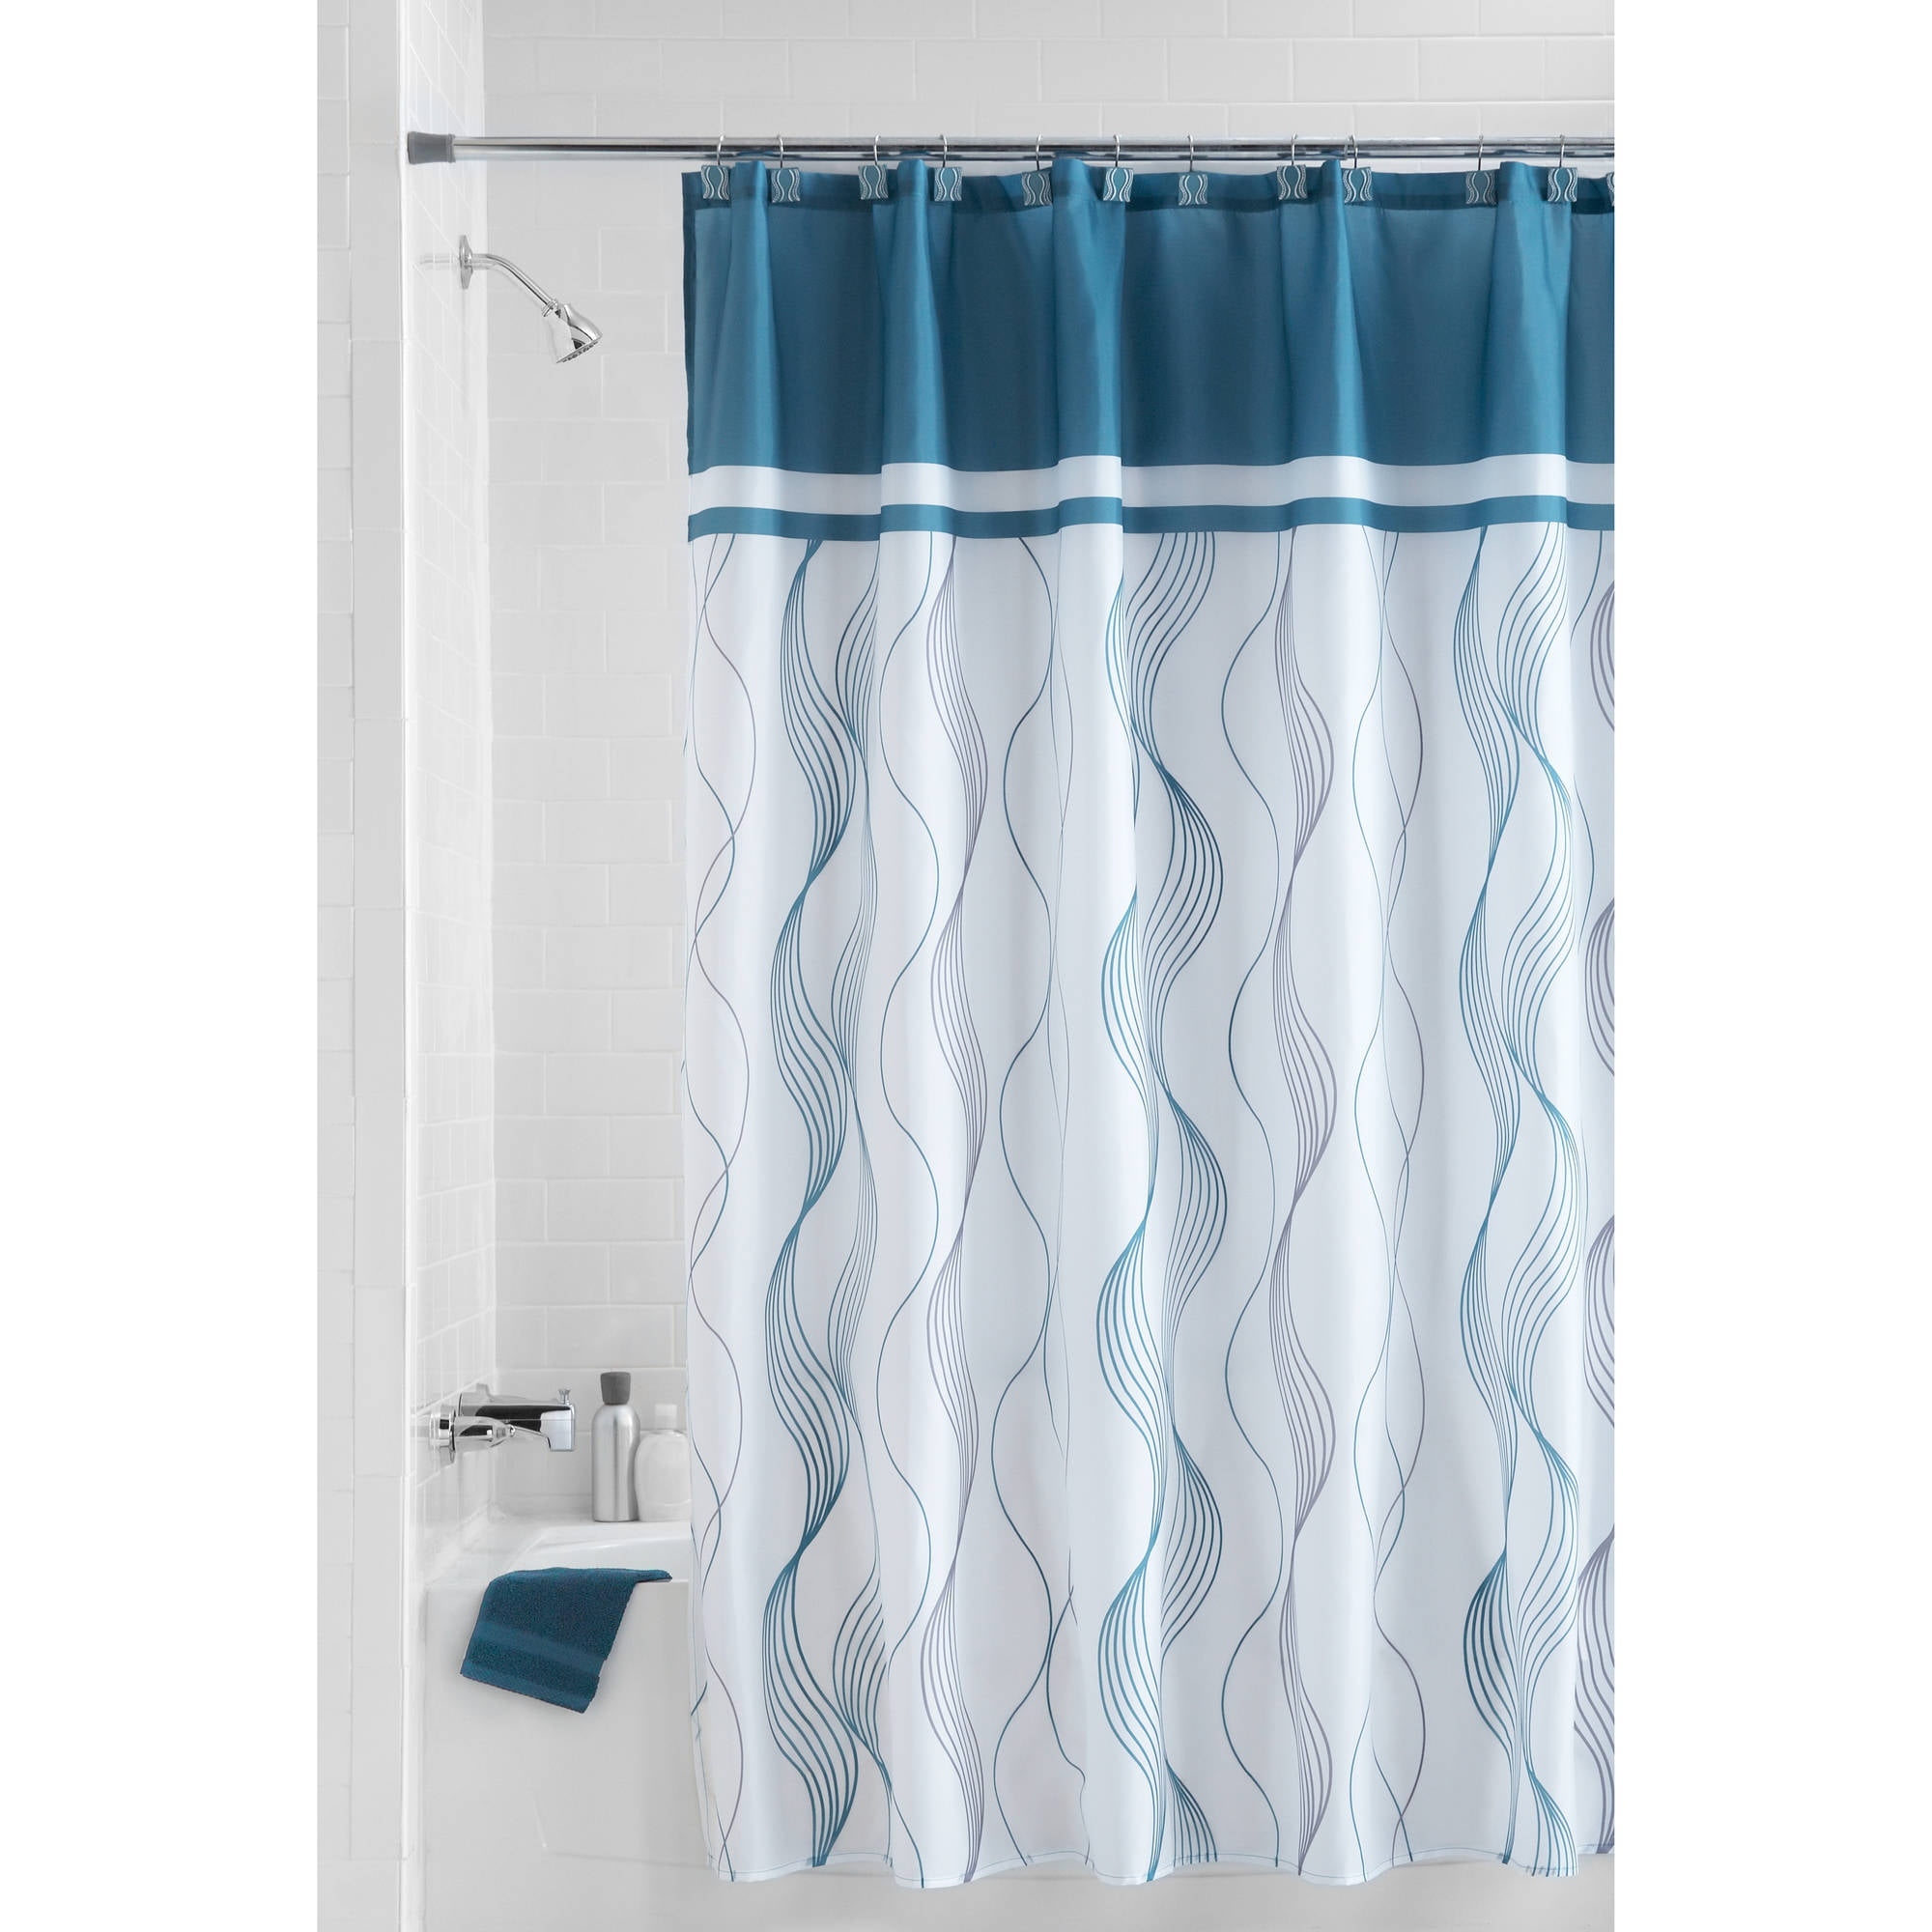 Good Mainstays Teal Cosmo 13 Piece Fabric Shower Curtain Set, Shower Curtain  Hooks Included   Walmart.com